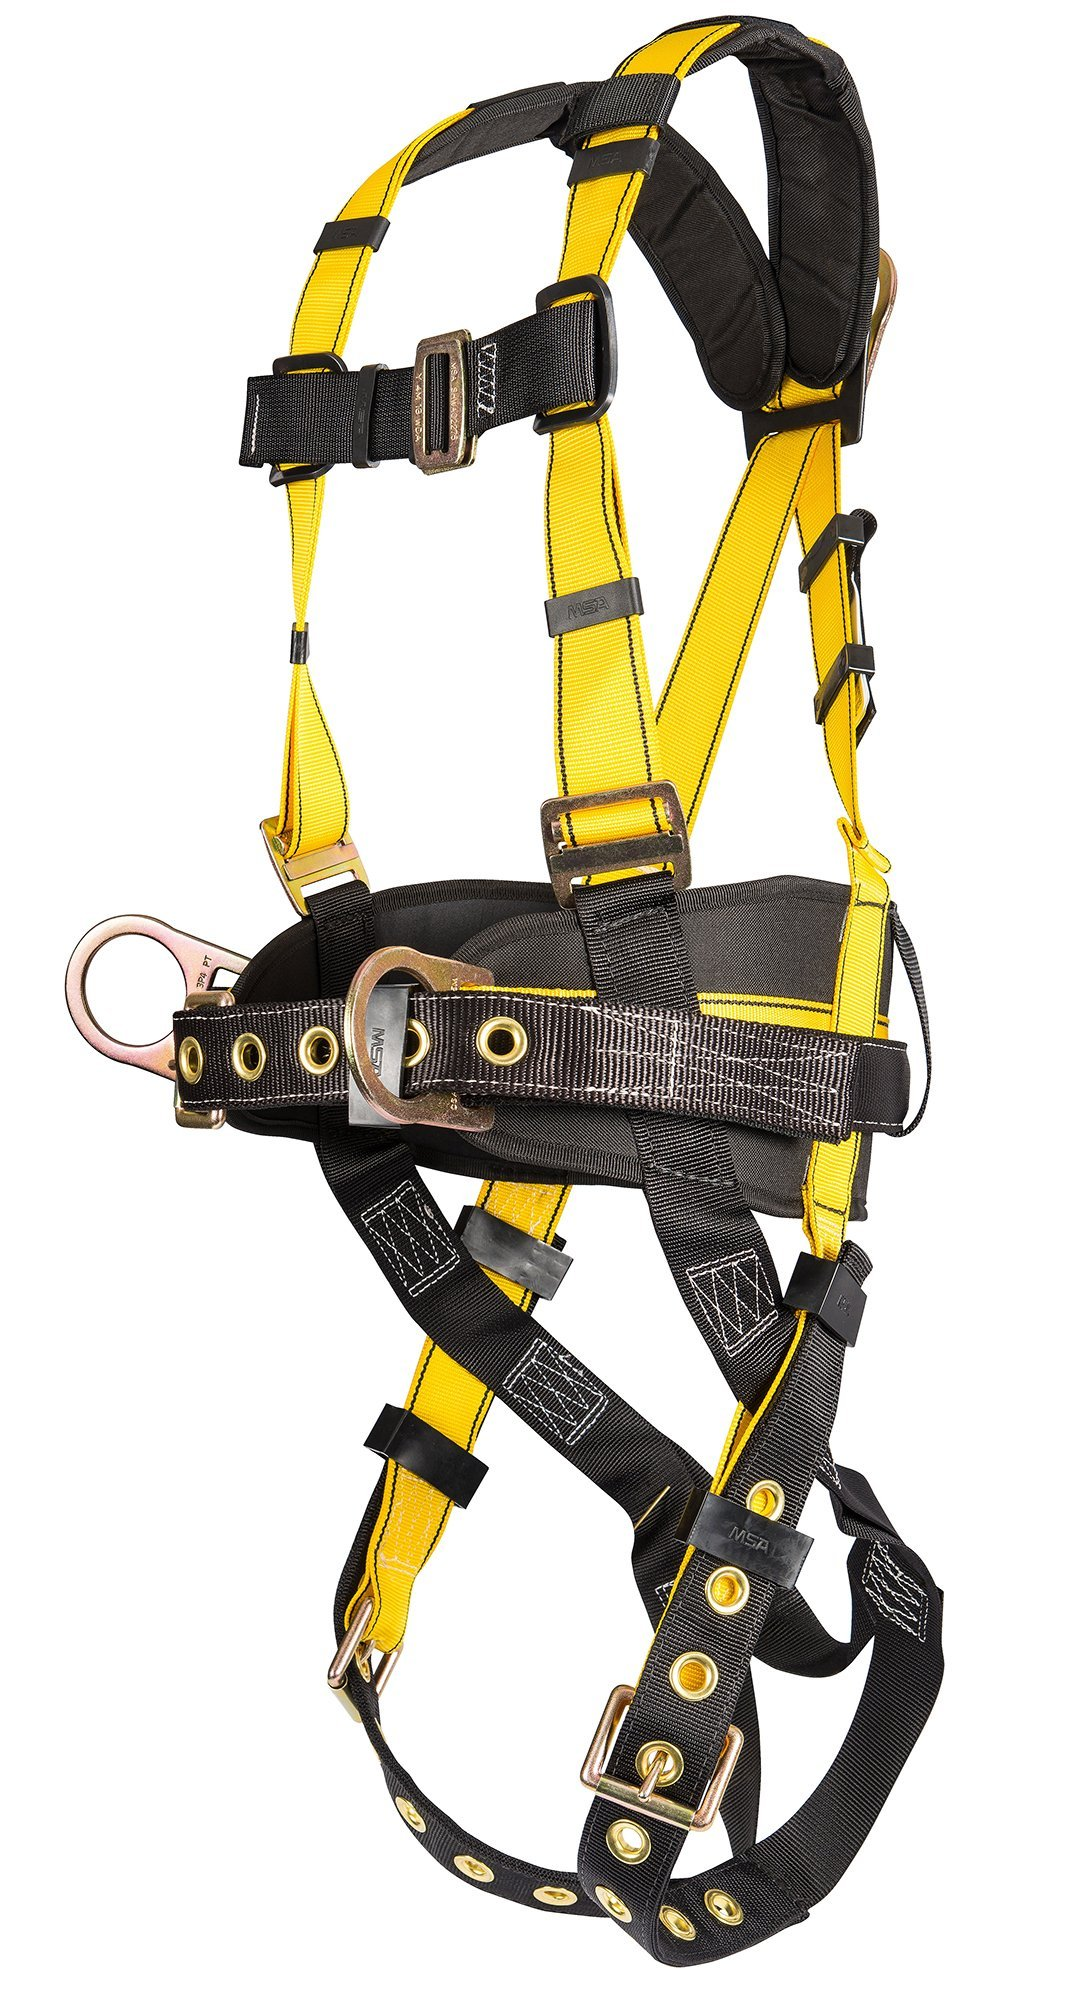 MSA 10077571 Workman Construction Harness with Back/Hip D-Rings, Tongue Buckle Leg Straps, Qwik-Fit Chest Strap Buckle, Integral Back Pad, Tool Belt and Shoulder Pads, Standard by MSA (Image #3)